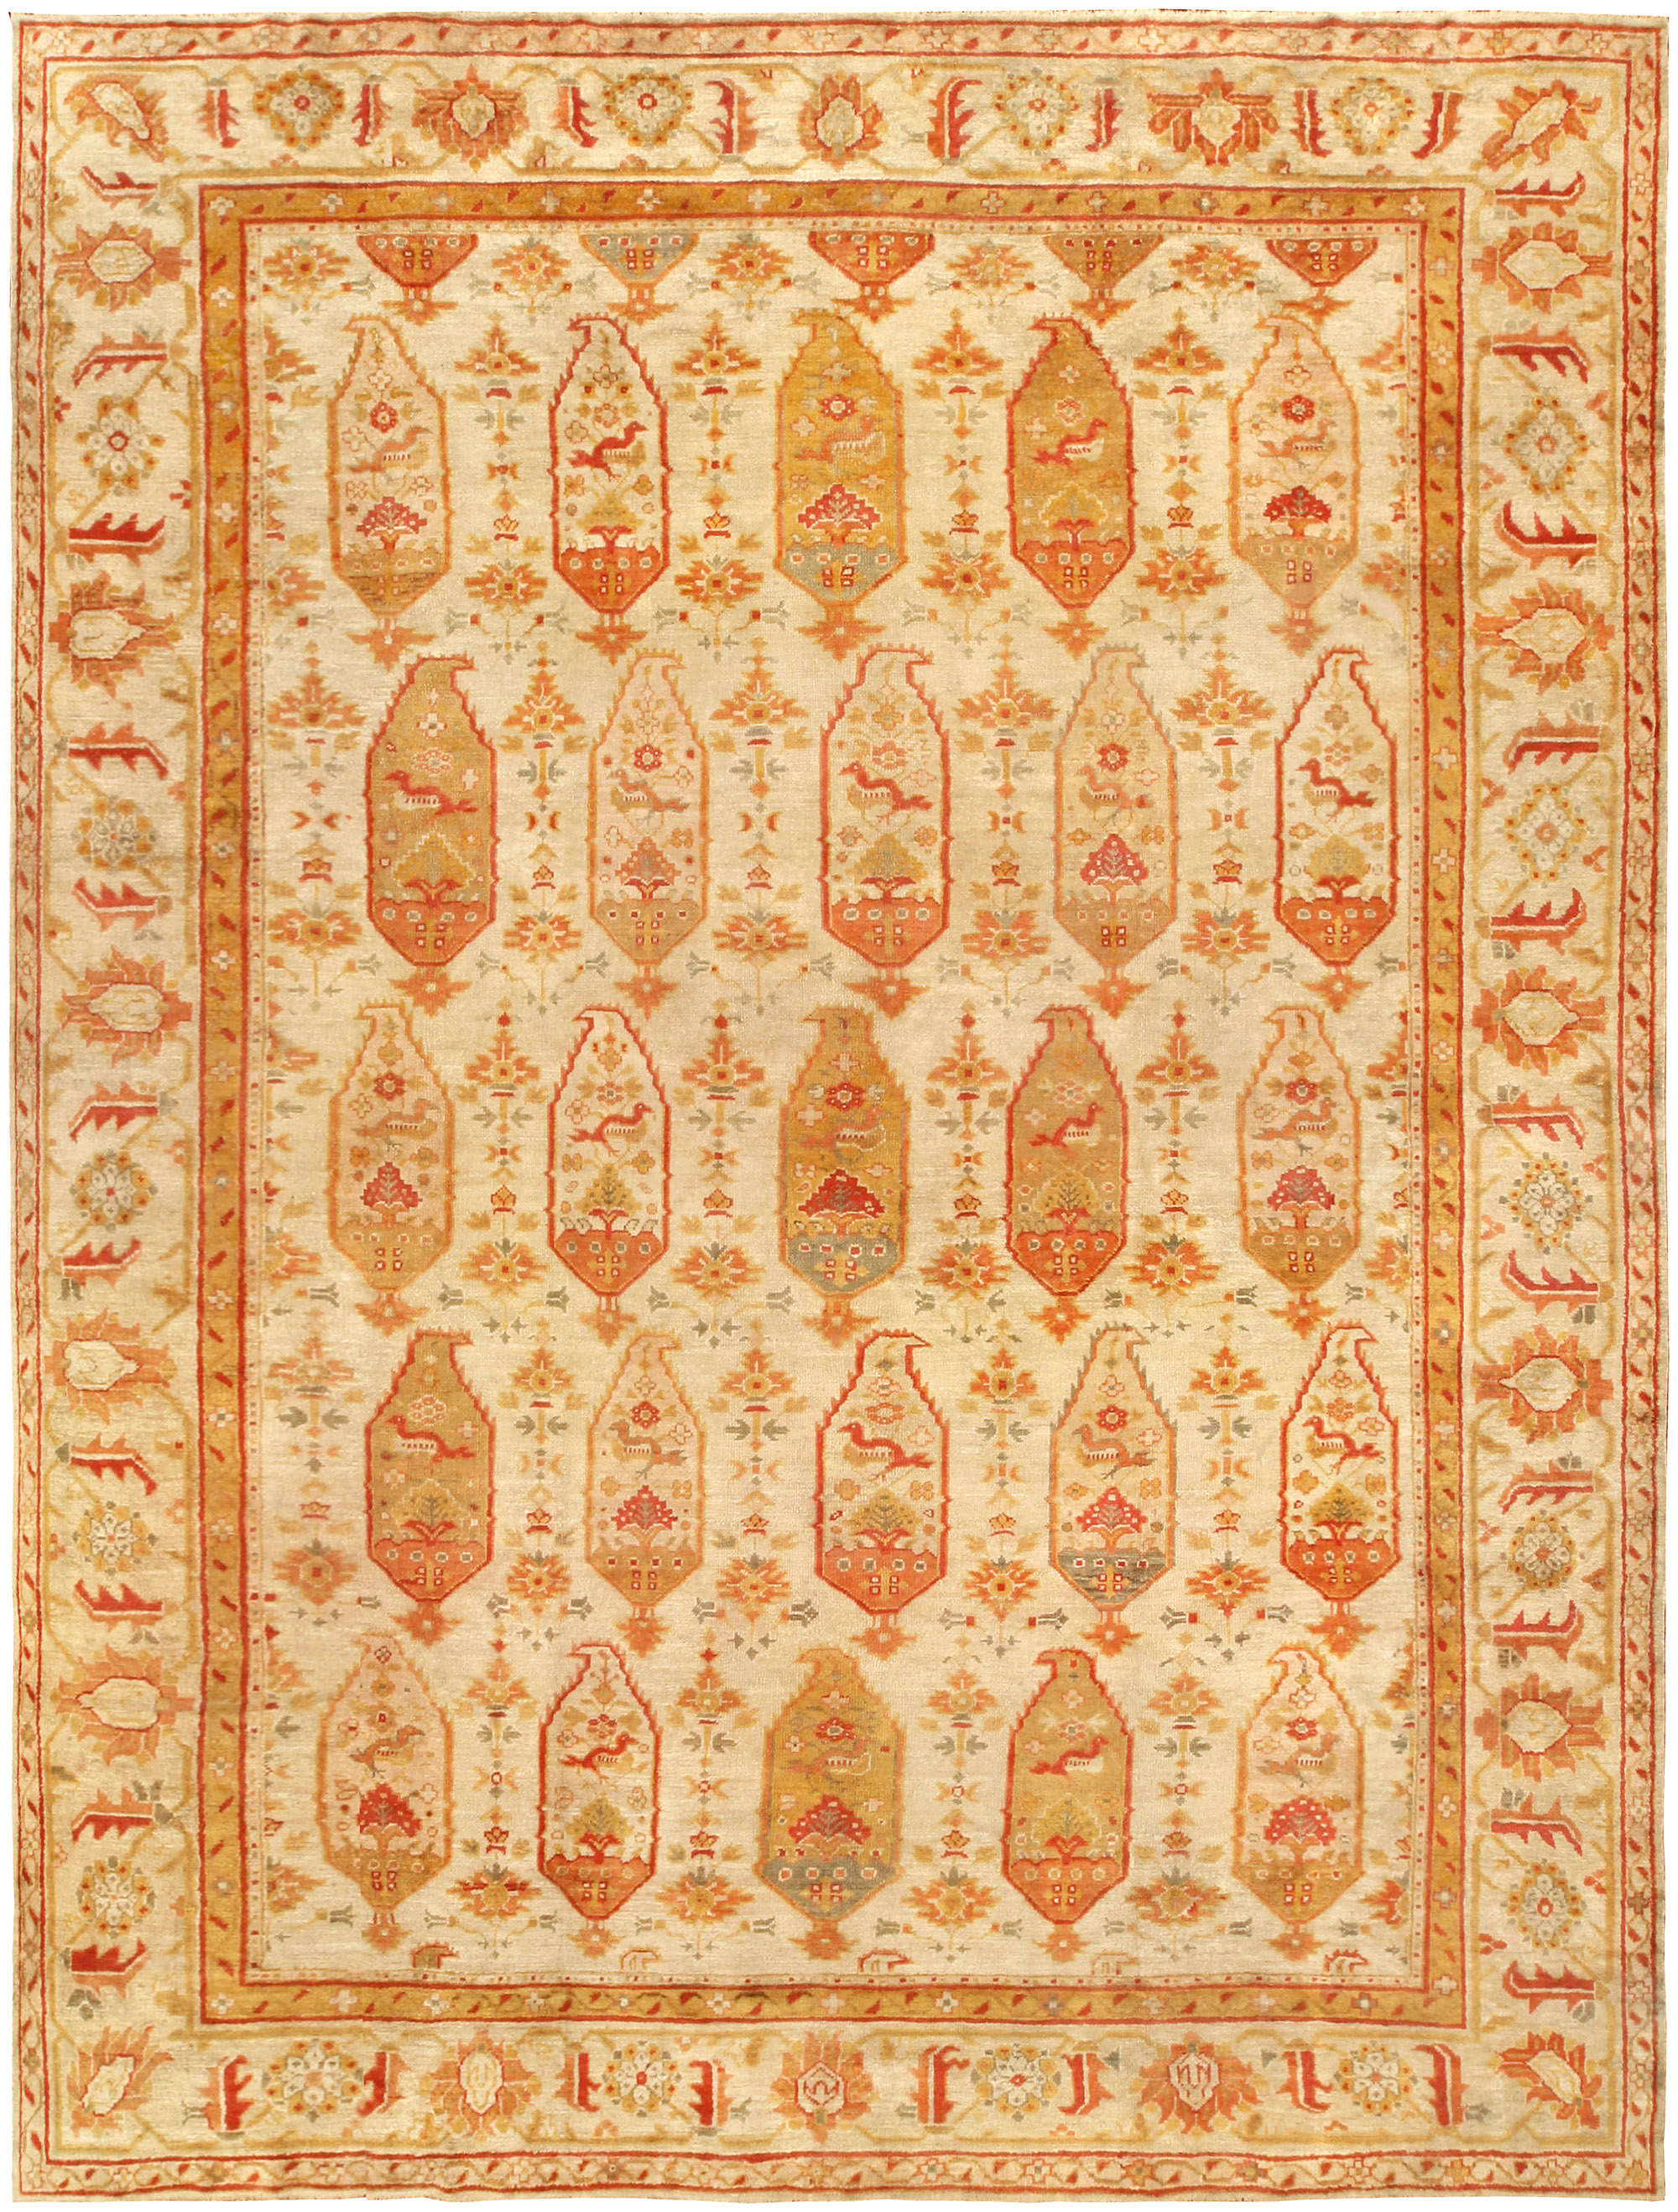 Classy oushak rugs for floorings and rugs ideas with antique oushak rugs